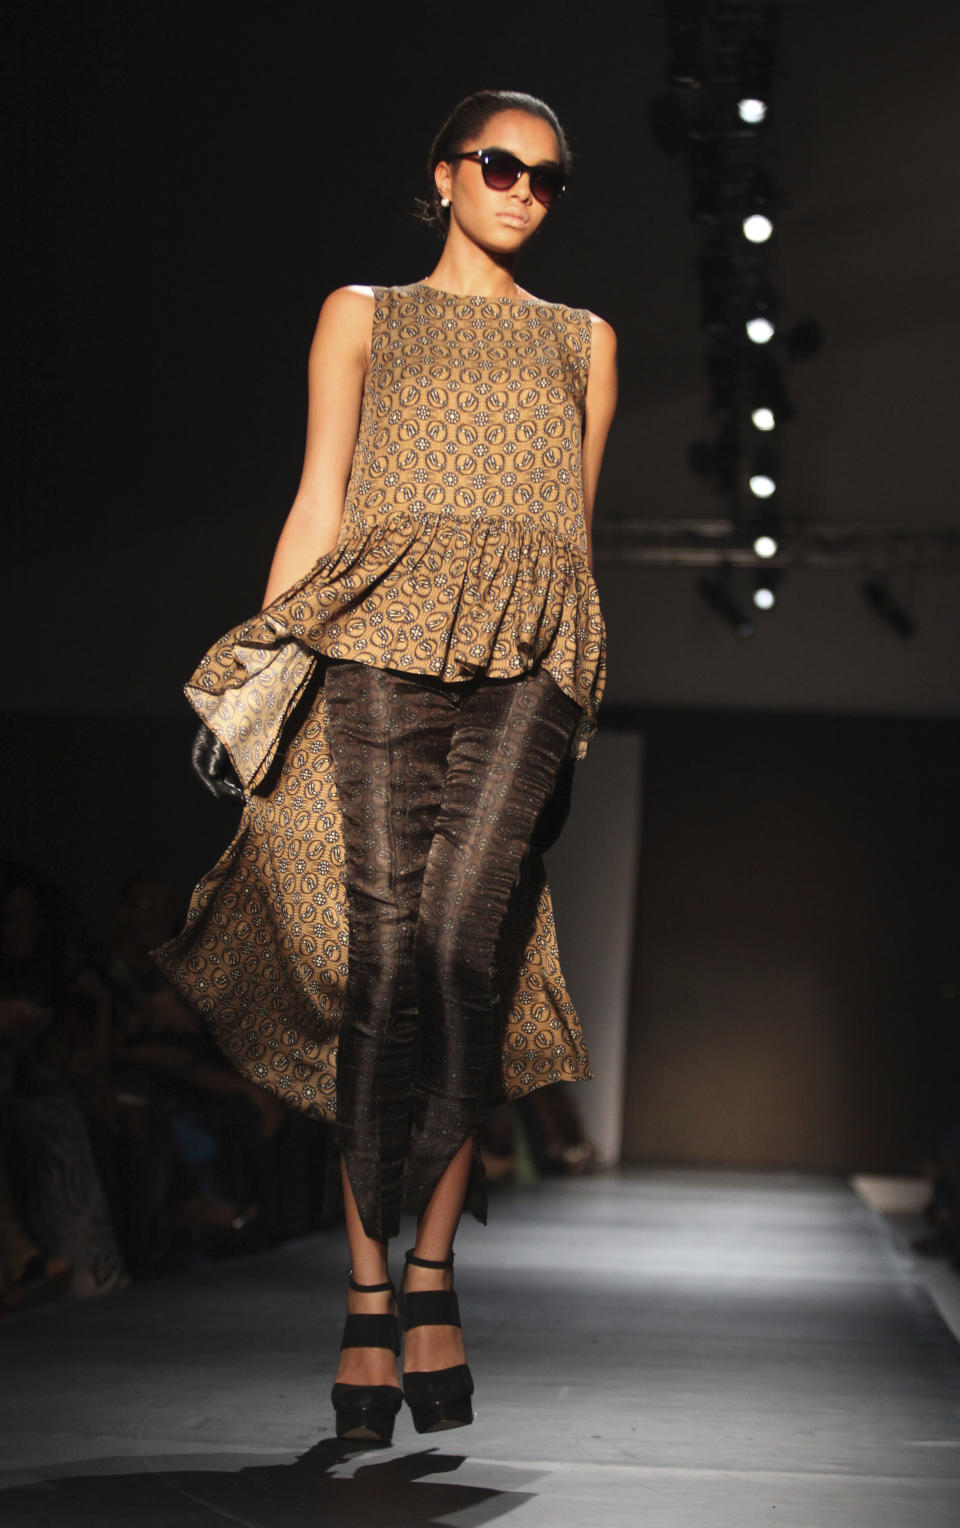 A model displays an outfit by designer Jewel by Lisa of Nigeria at the ARISE Fashion Week event in Lagos, Nigeria on Sunday, March 11, 2012. (AP Photos/Sunday Alamba)